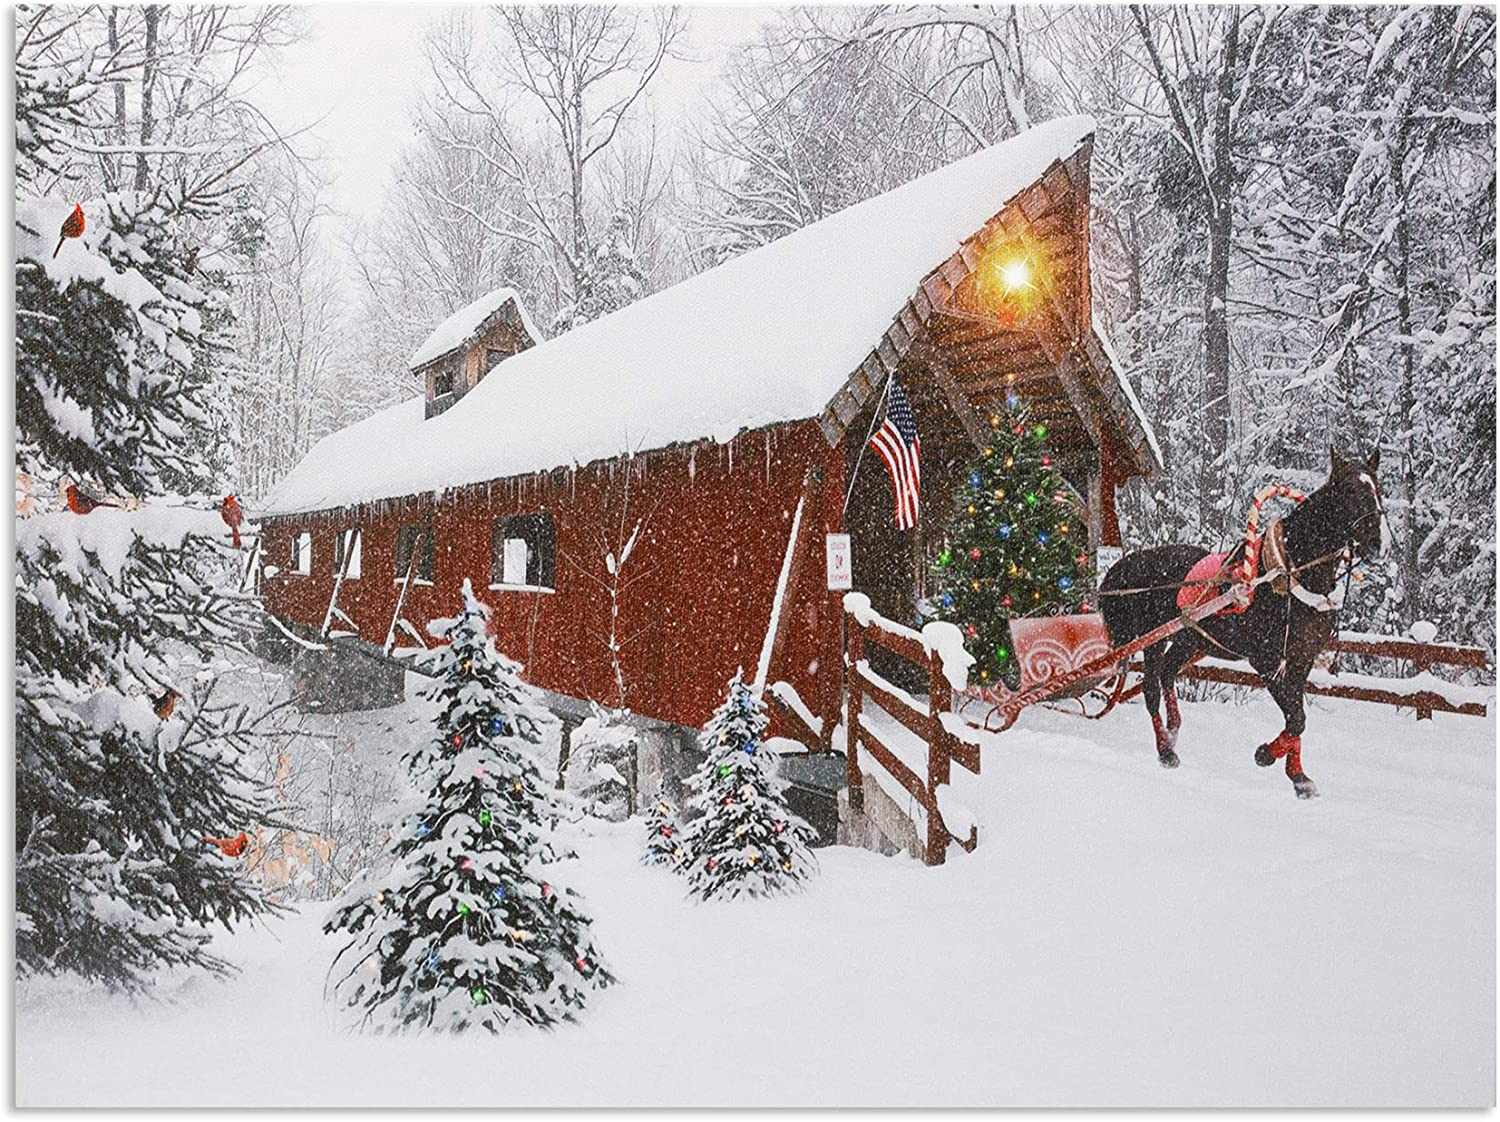 Lighted Christmas Wall Art - Red Covered Bridge and Horse Christmas Picture - LED and Fiber Optic Lights in a Canvas Print with a Winter Holiday Scene - Farmhouse Style Xmas Decor